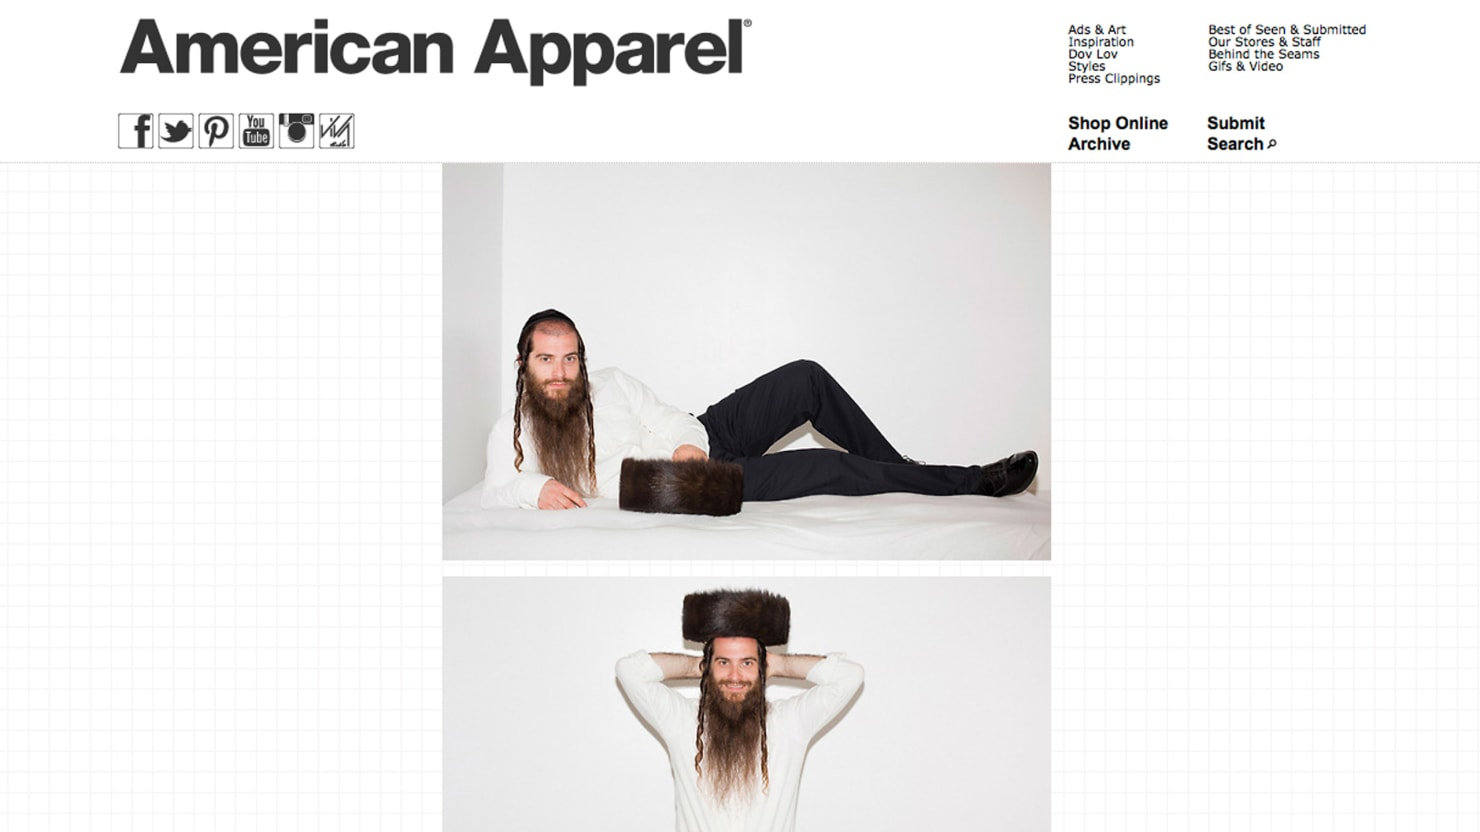 The most scandalous advertising American Apparel